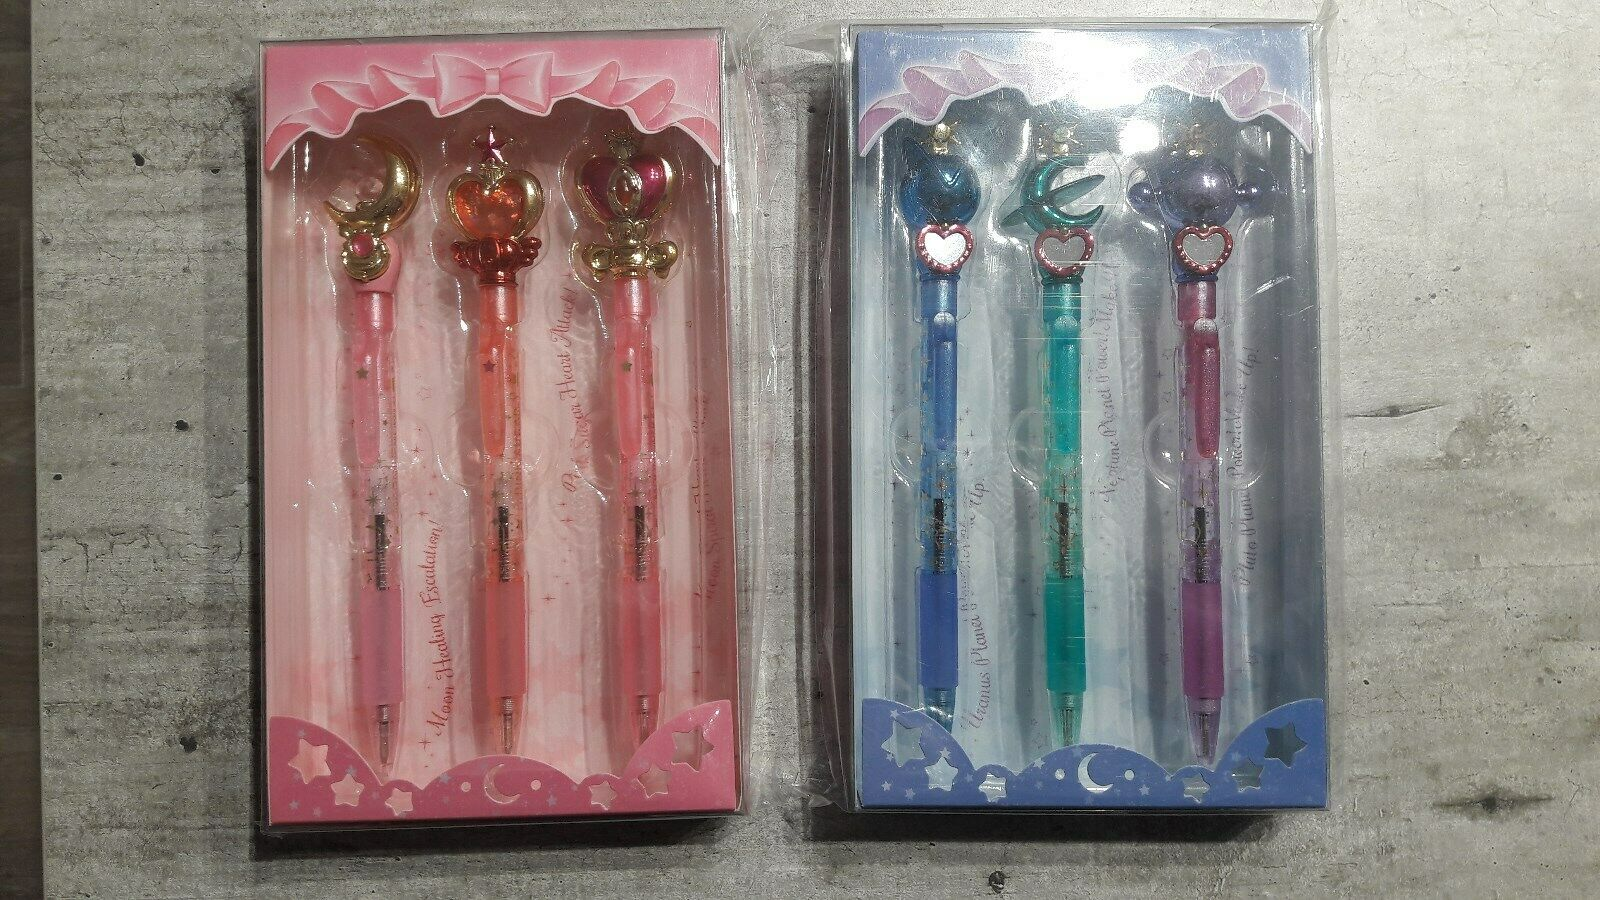 6 stylos Sailor Moon power ball pen  Prism Sun-star stationery sceptre uranus  jusqu'à 42% de réduction